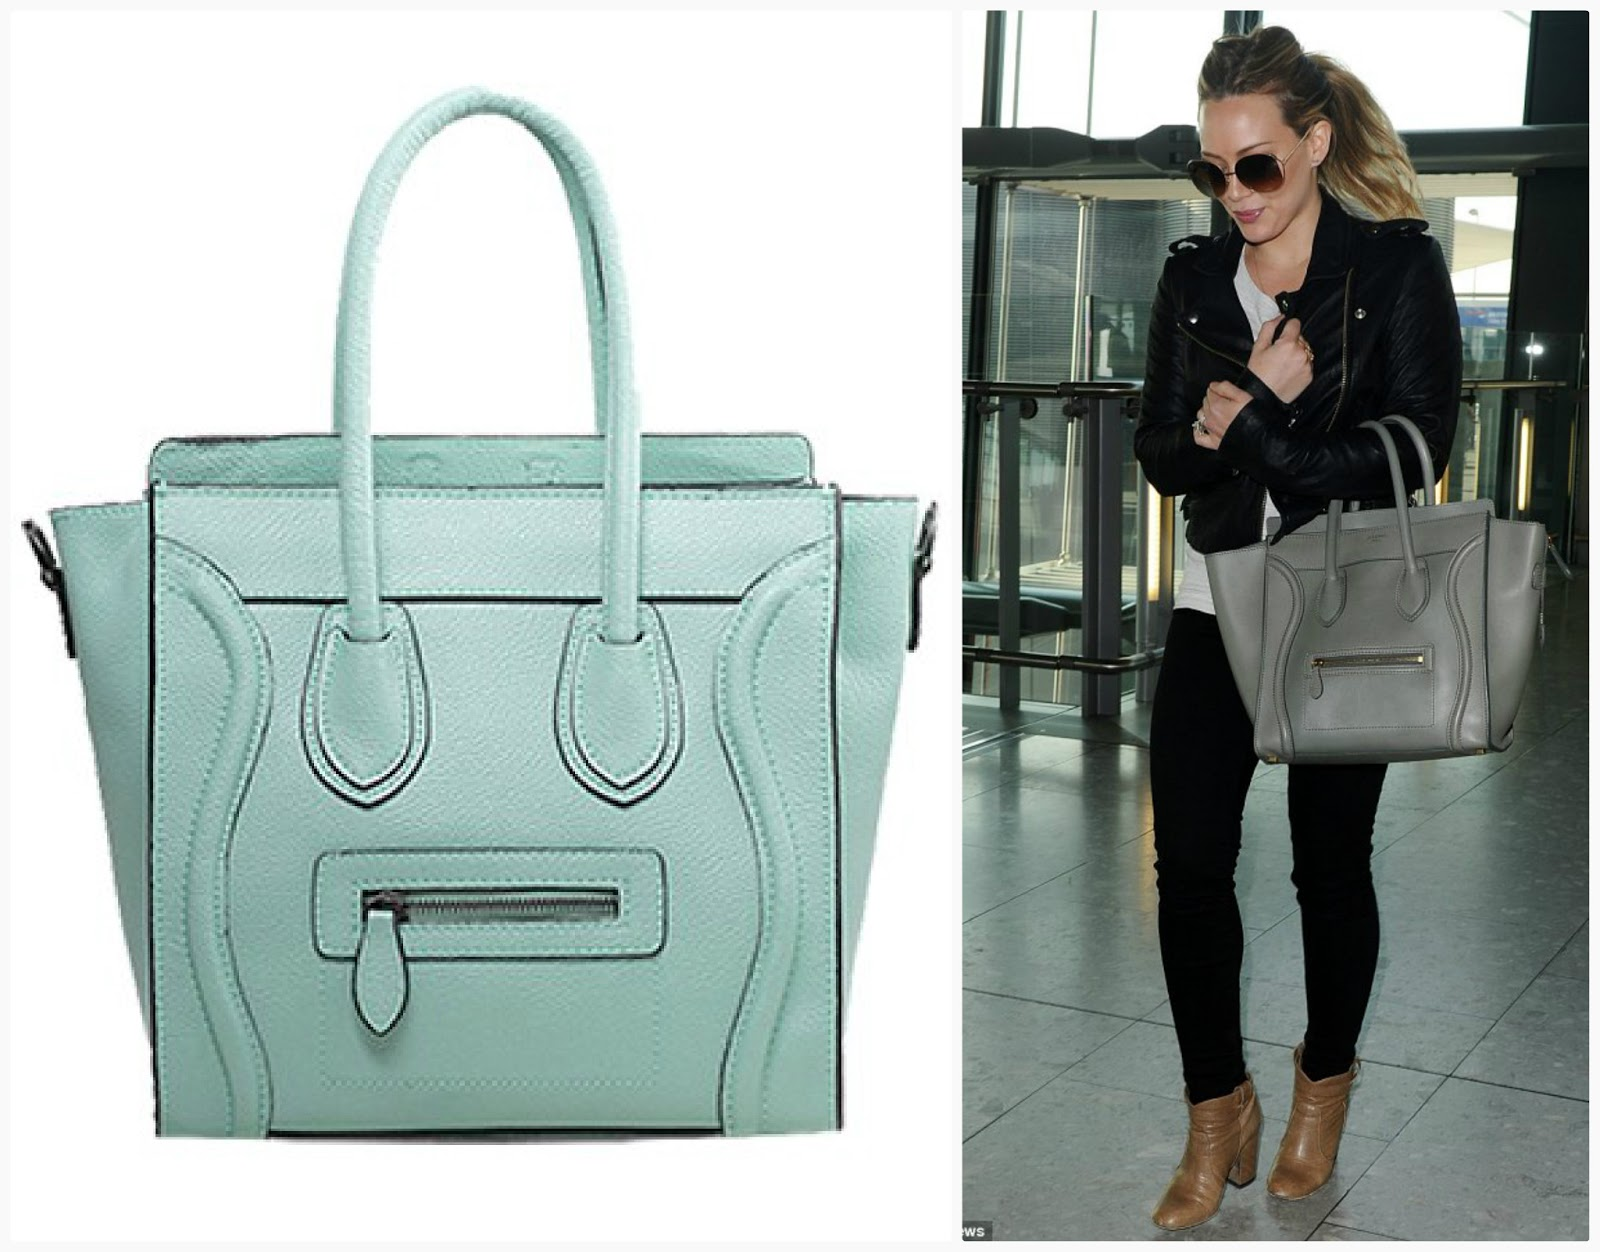 The Latest Celebrity BAG - Home | Facebook